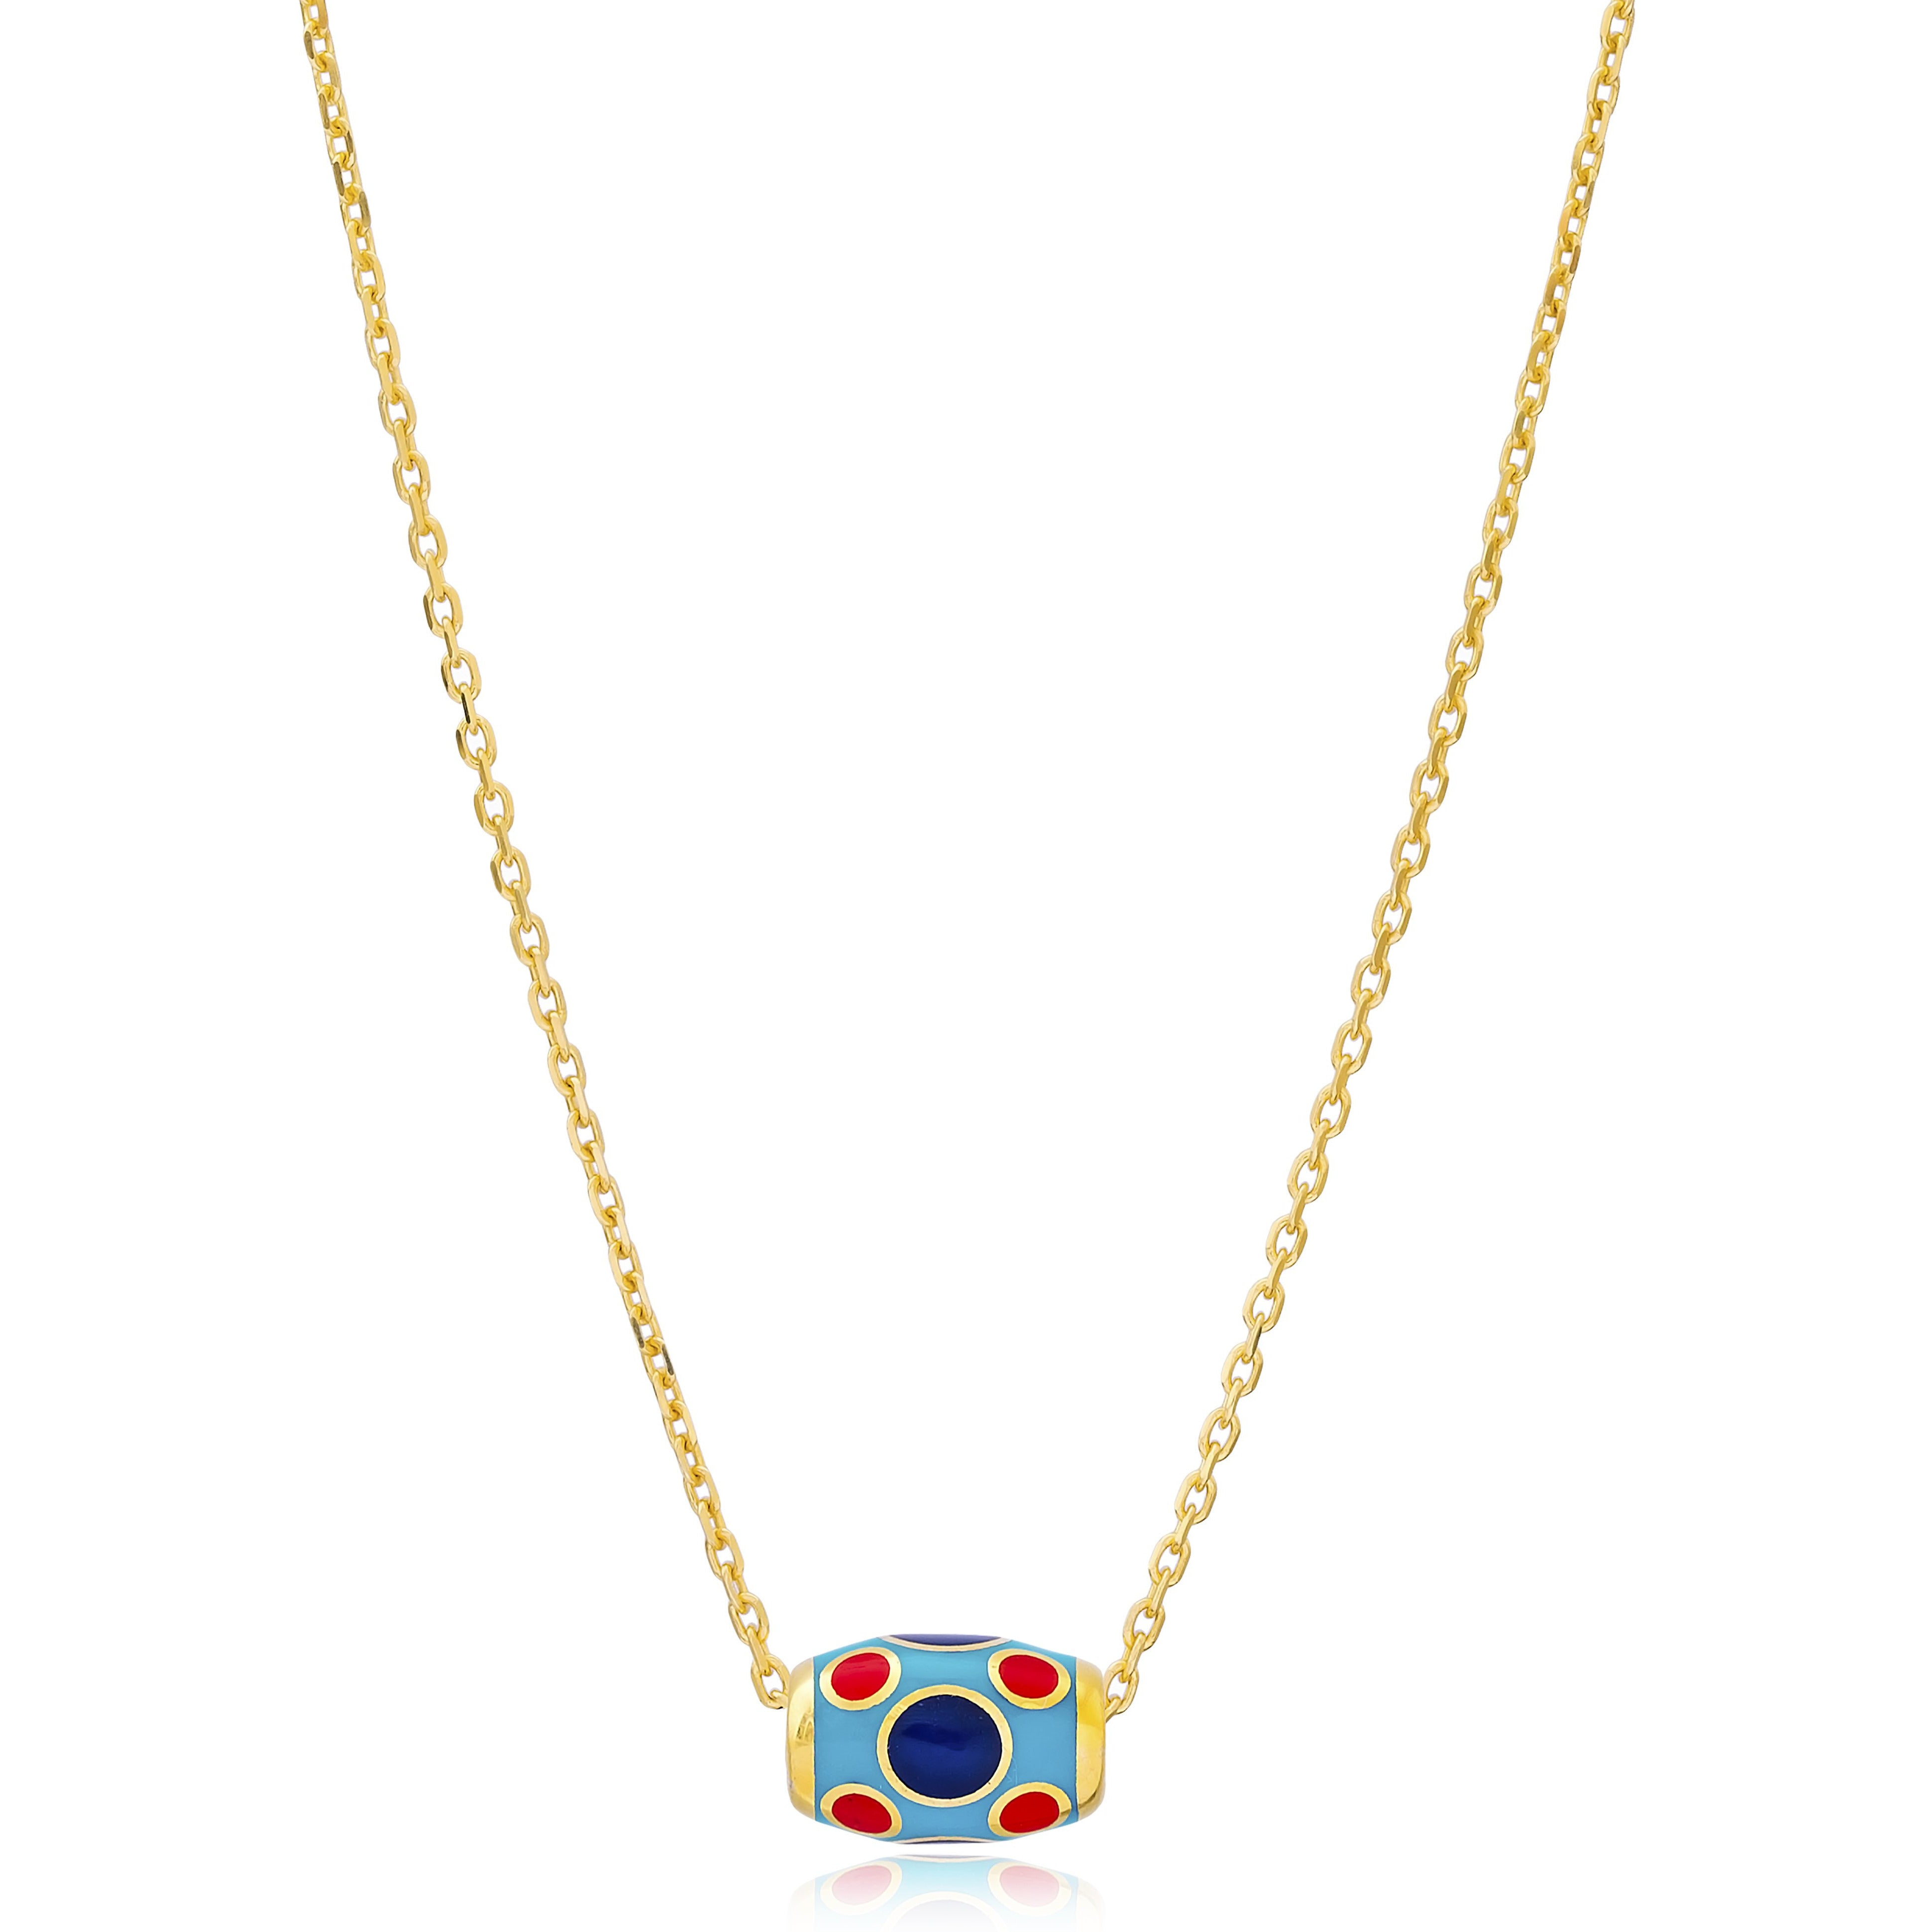 Barrel Blue Enamel Bead Necklace in Gold Finish